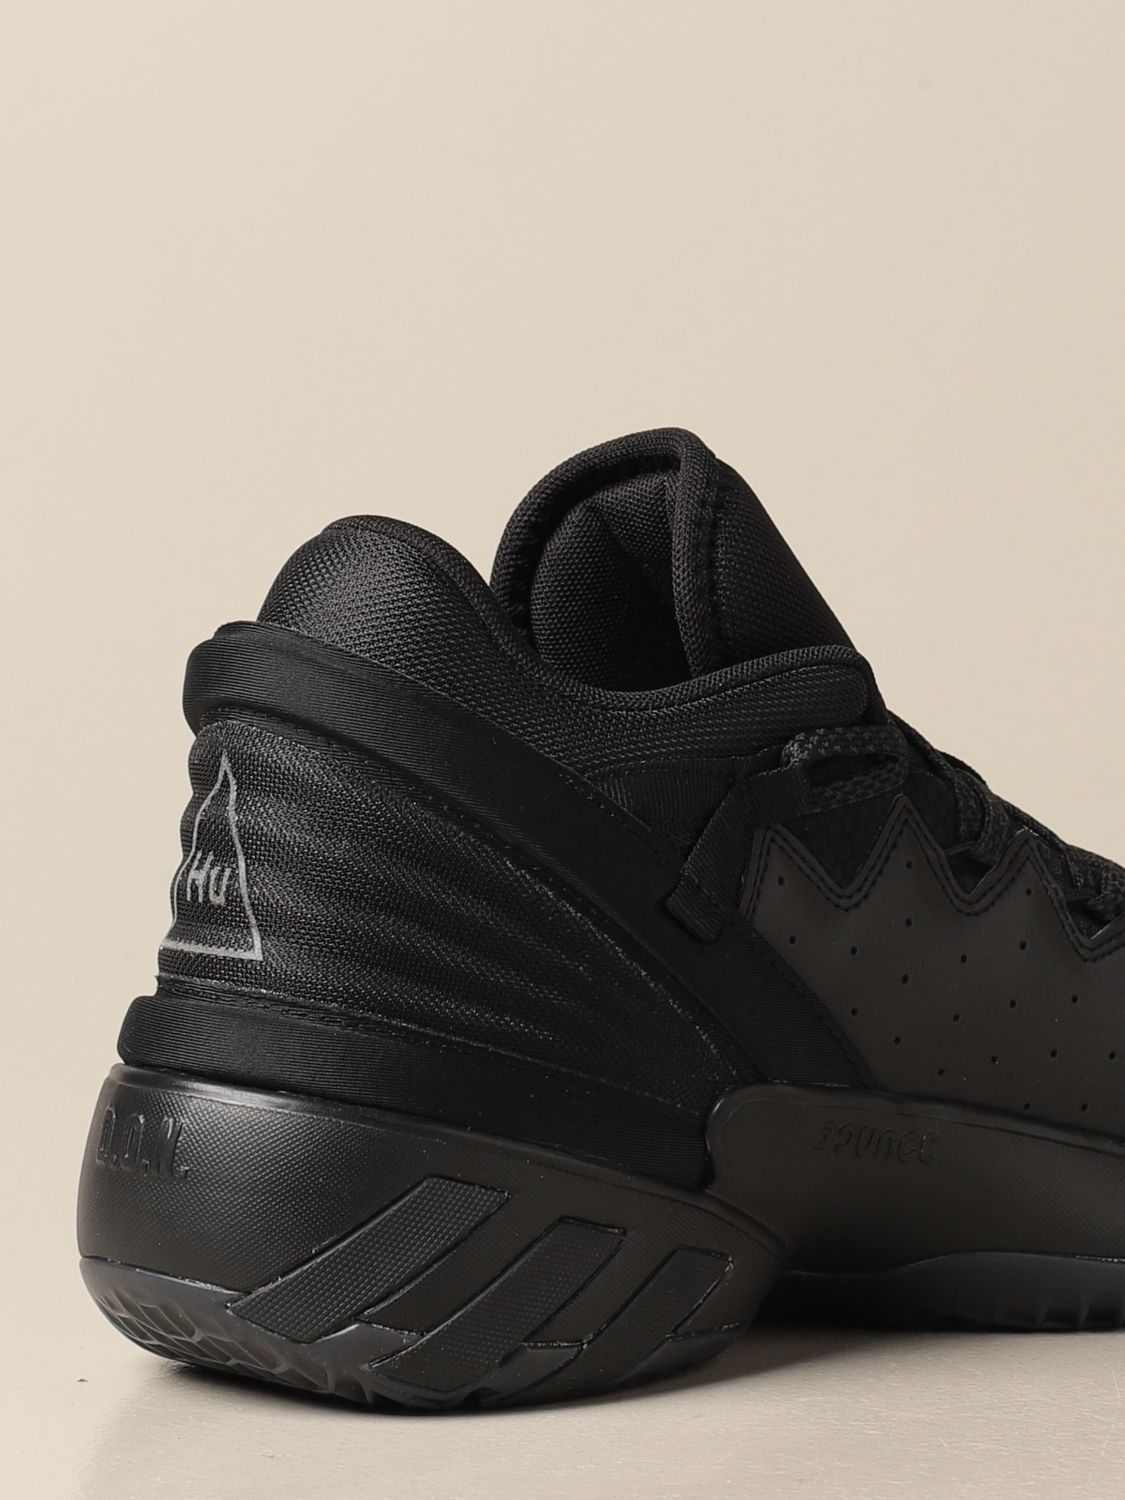 Trainers Adidas Originals: Sneakers D.O.N. Issue 2 Adidas Originals in technical fabric black 3